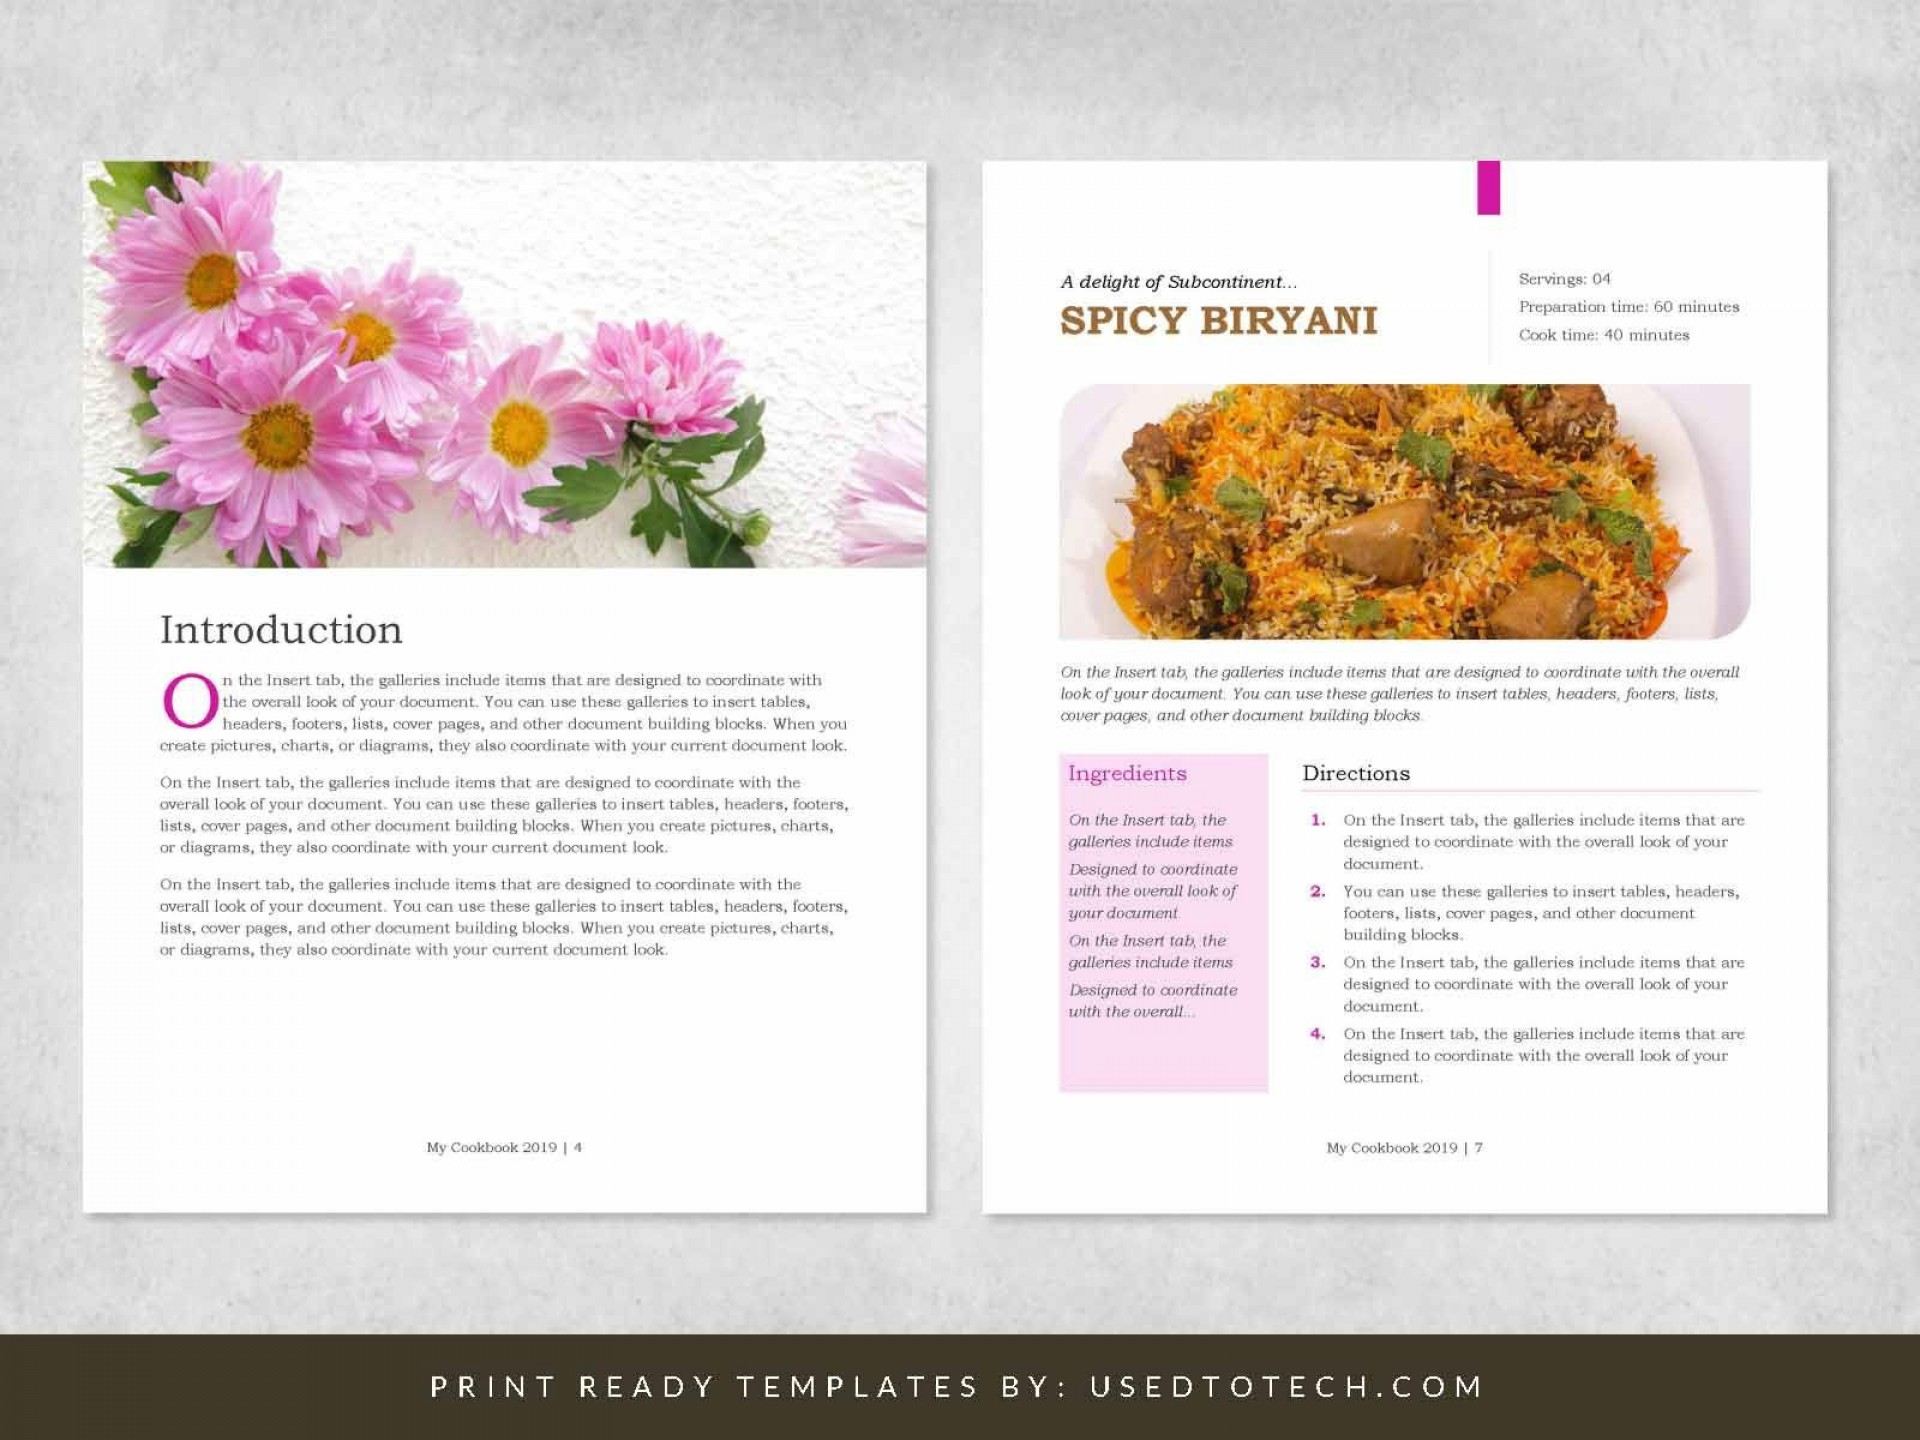 000 Wondrou Create Your Own Cookbook Free Template Inspiration 1920